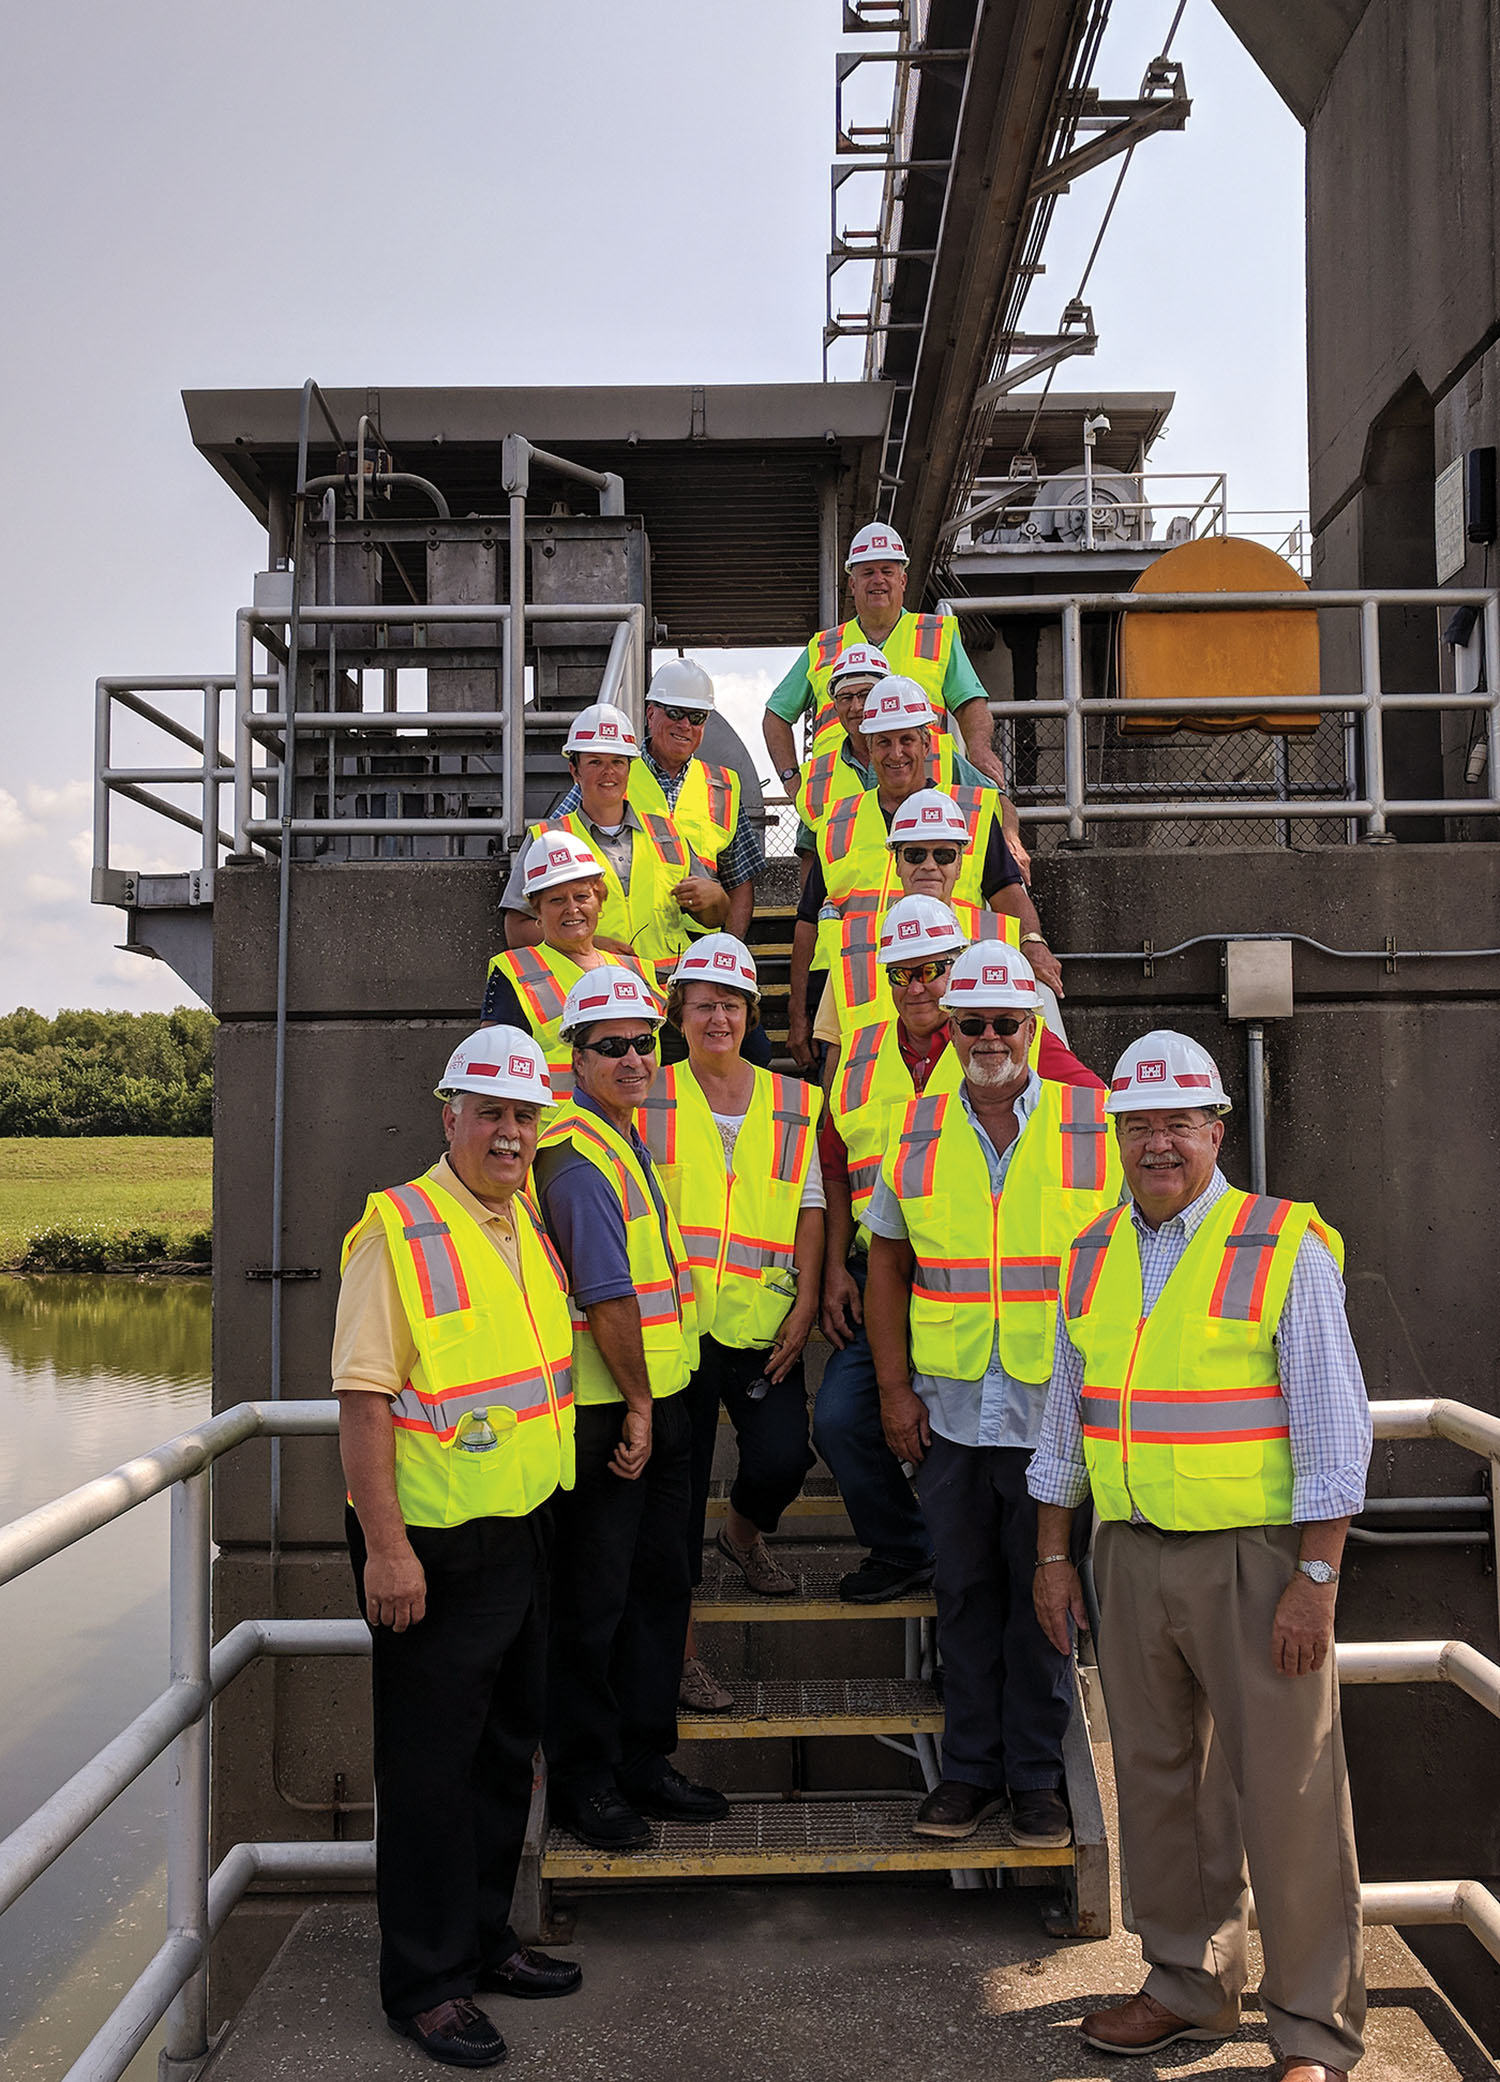 Board members from the Kaskaskia Regional Port District Tour the Jerry F. Costello Lock and Dam during dewatering.